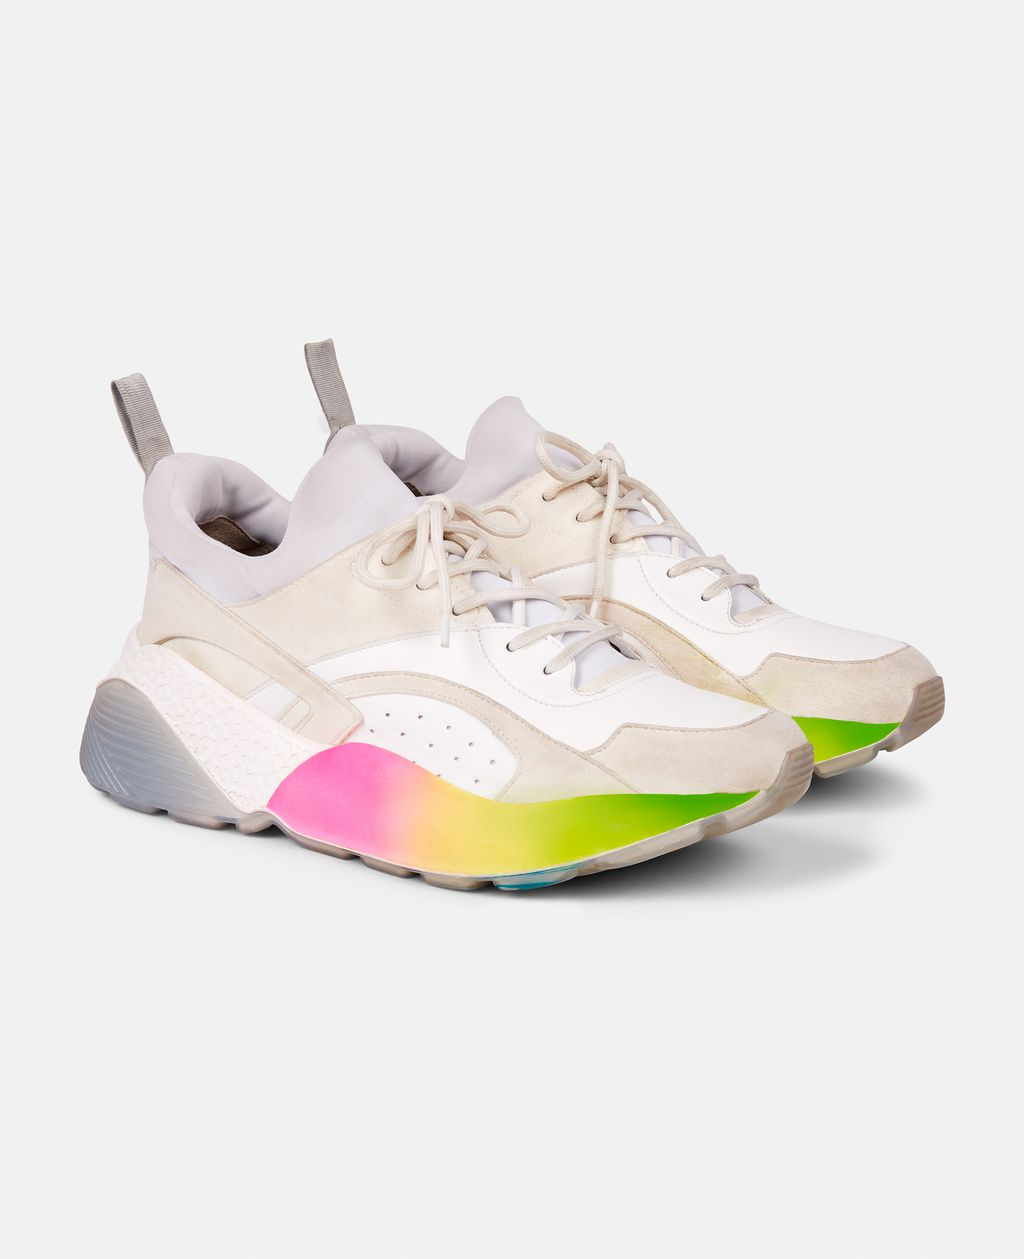 Eclypse Rainbow Sneakers, $685 @stellamccartney.com